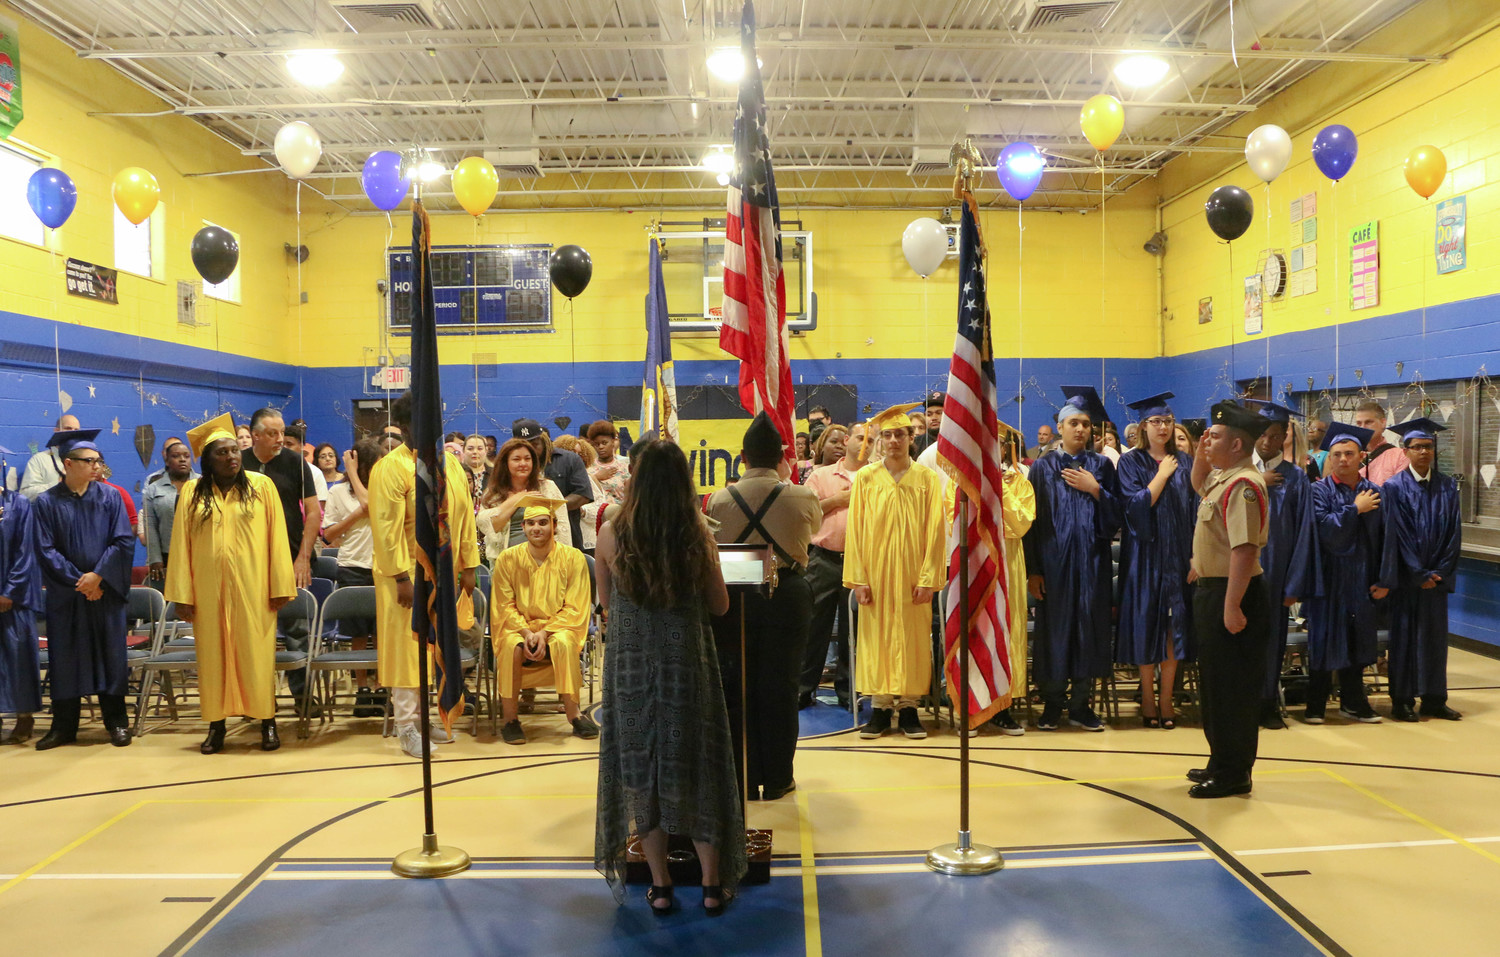 Freeport High School NAVY ROTC Color Guard, saluted the flag while Christina Cuevas, center, led graduates and attendees in the singing of the Star Spangled Banner during the graduation ceremony.